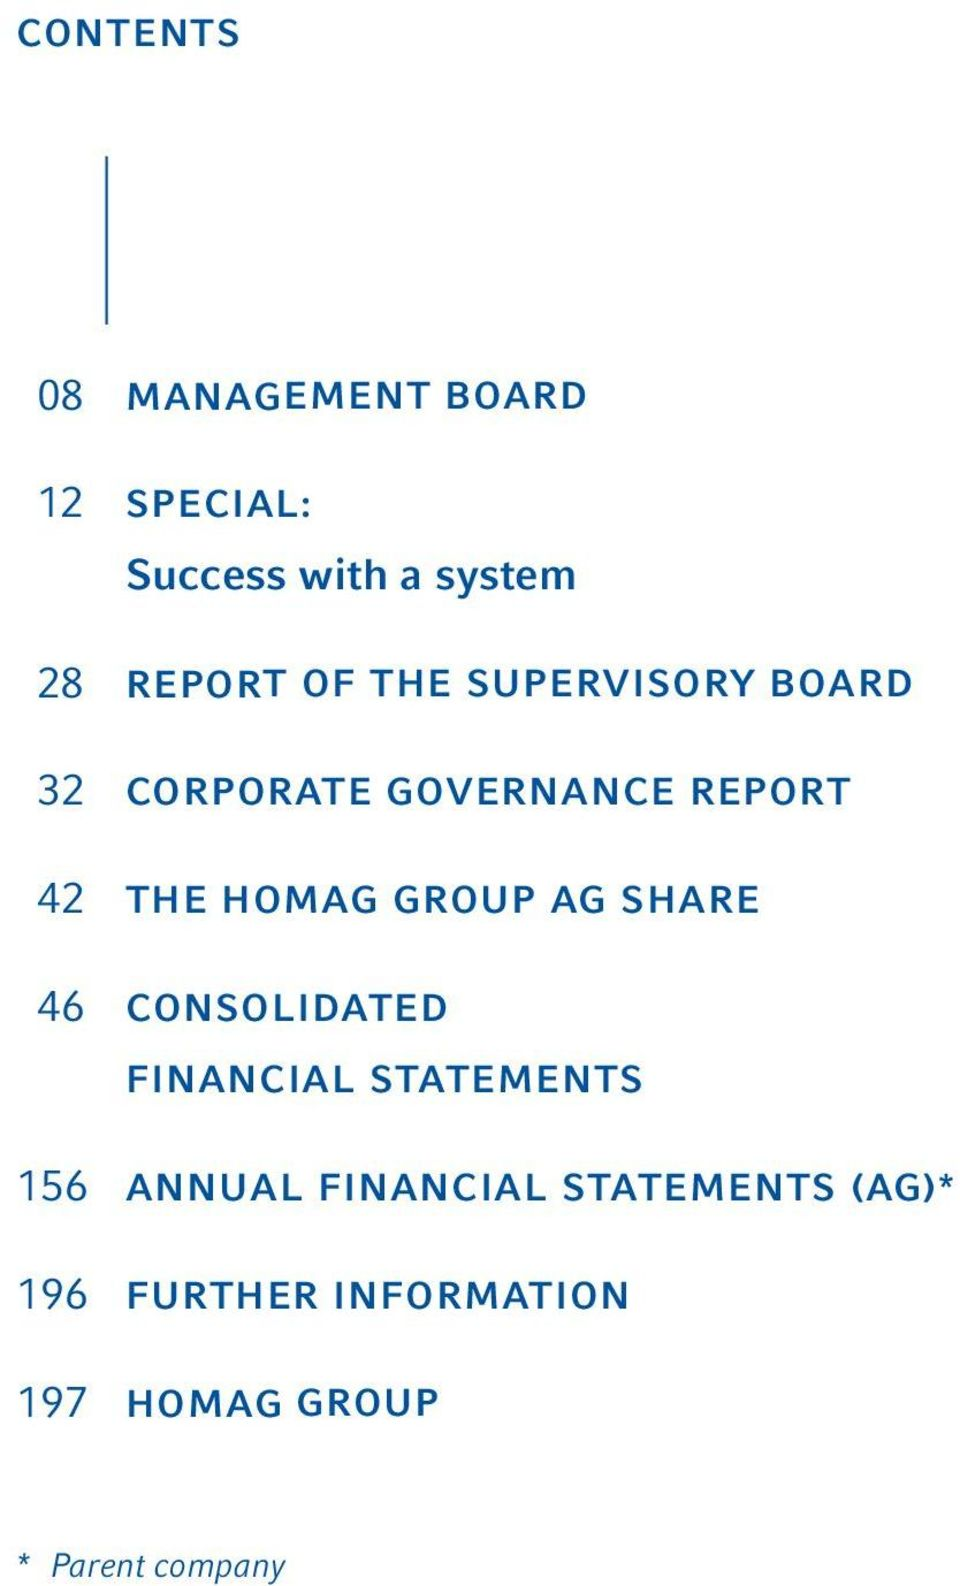 HOMAG GROUP AG SHARE 46 CONSOLIDATED FINANCIAL STATEMENTS 156 ANNUAL